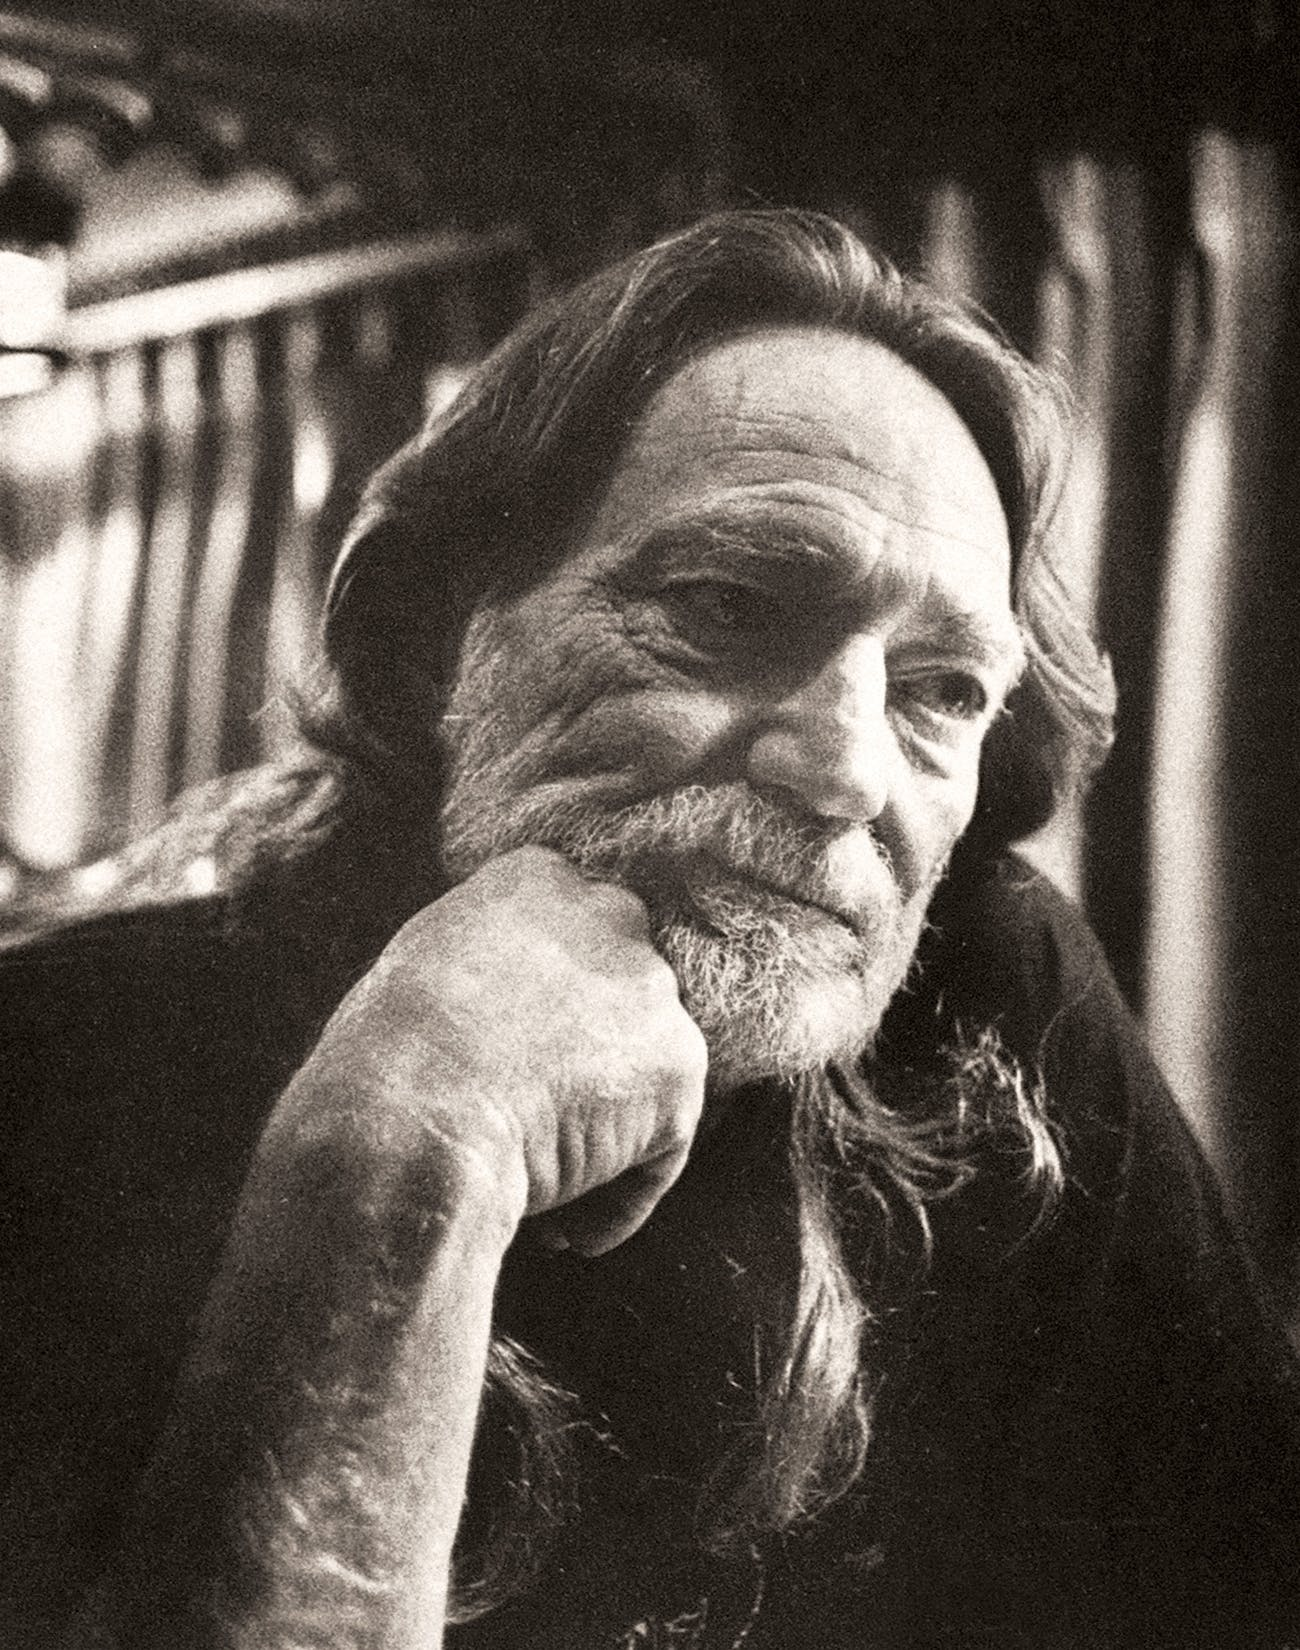 Willie Nelson in his motor coach on February 5, 1991, listening to the IRS Tapes after his property was seized by the agency.